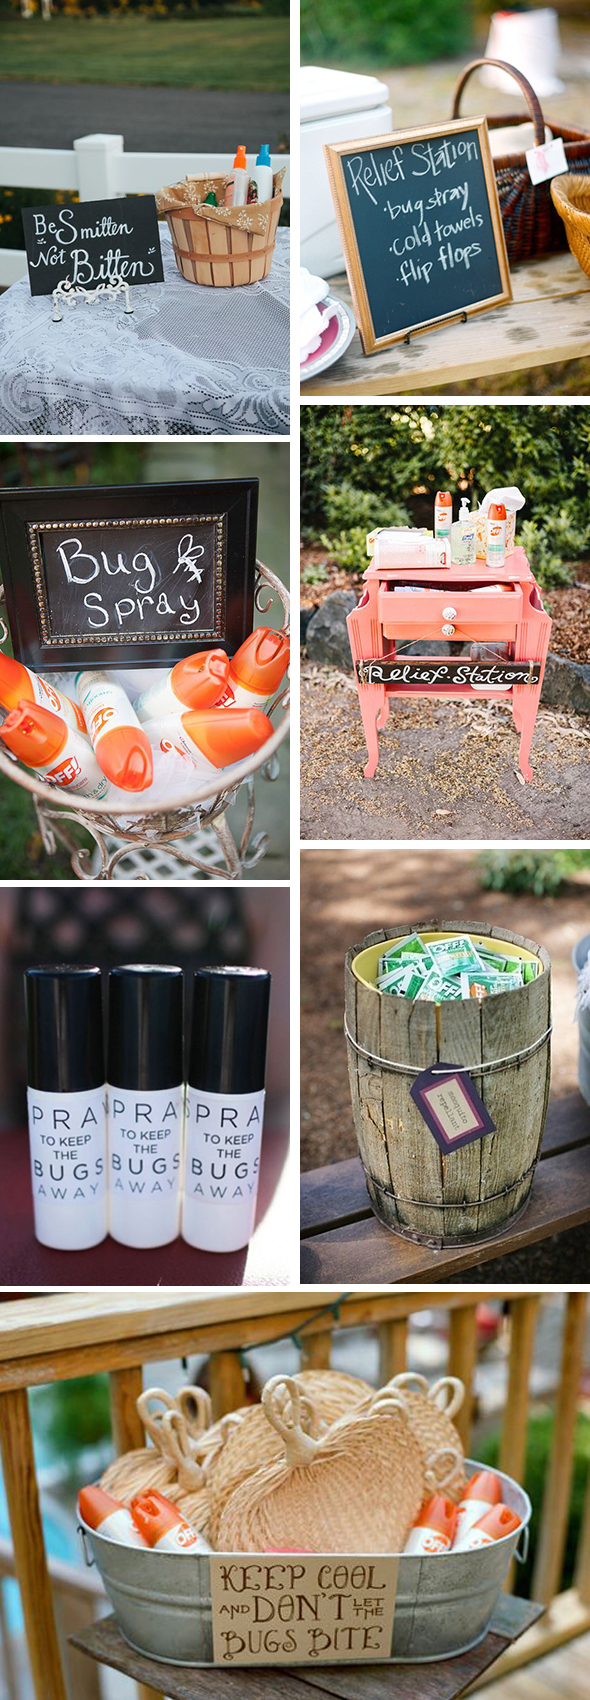 wedding bug spray ideas